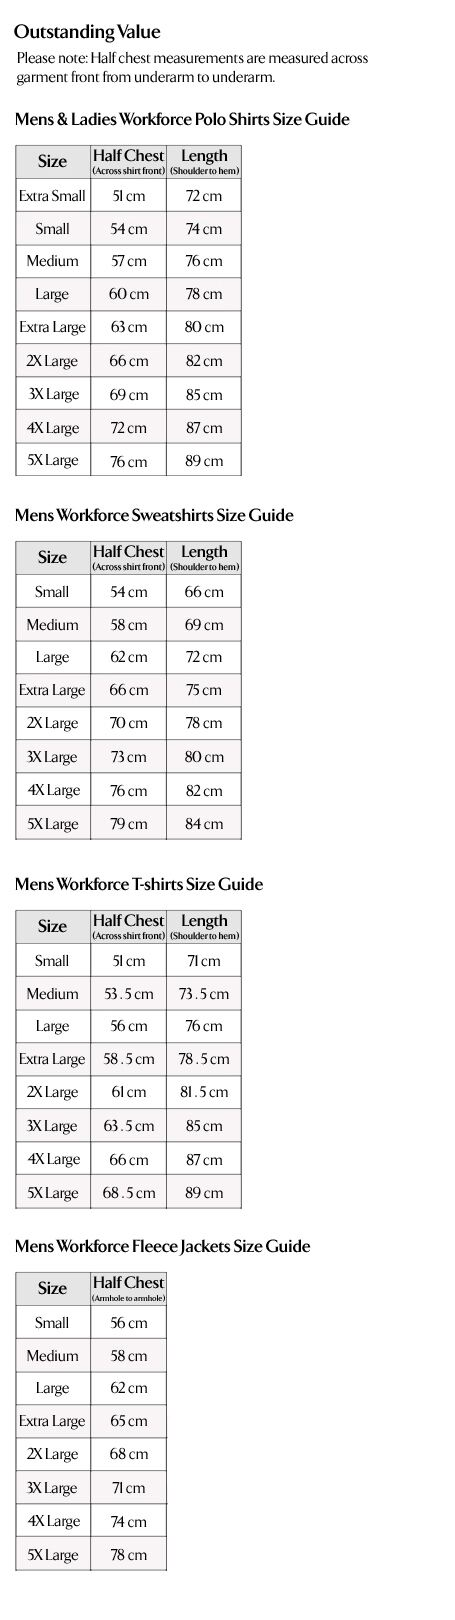 Outstanding Value Mens & Ladies Workforce Workwear Size Guide